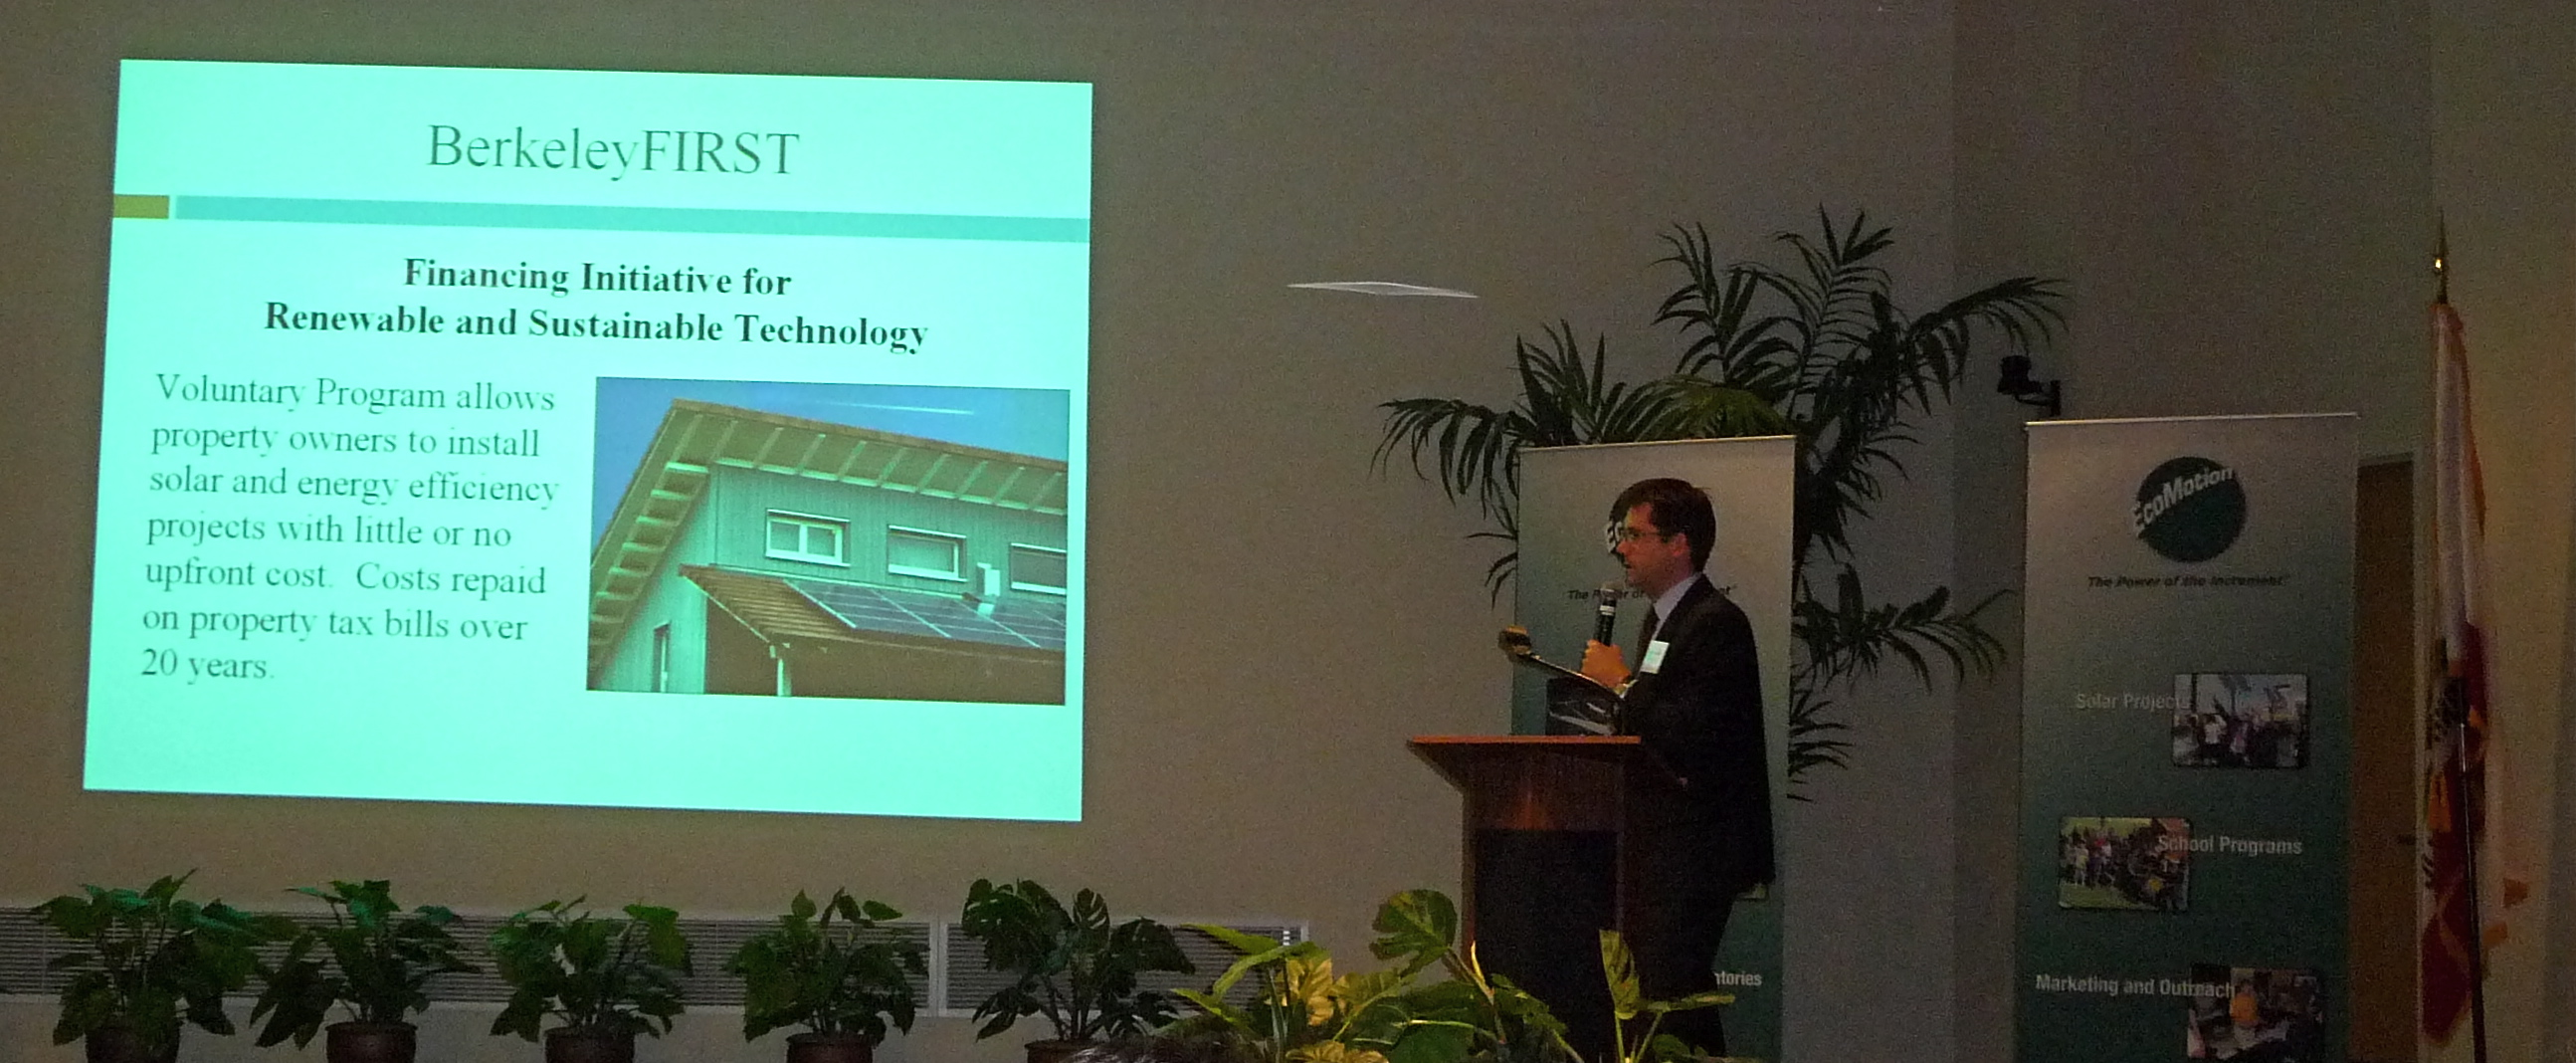 Cisco Devries, President of Renewable Funding from Berkeley, gives his presentation to the conference.